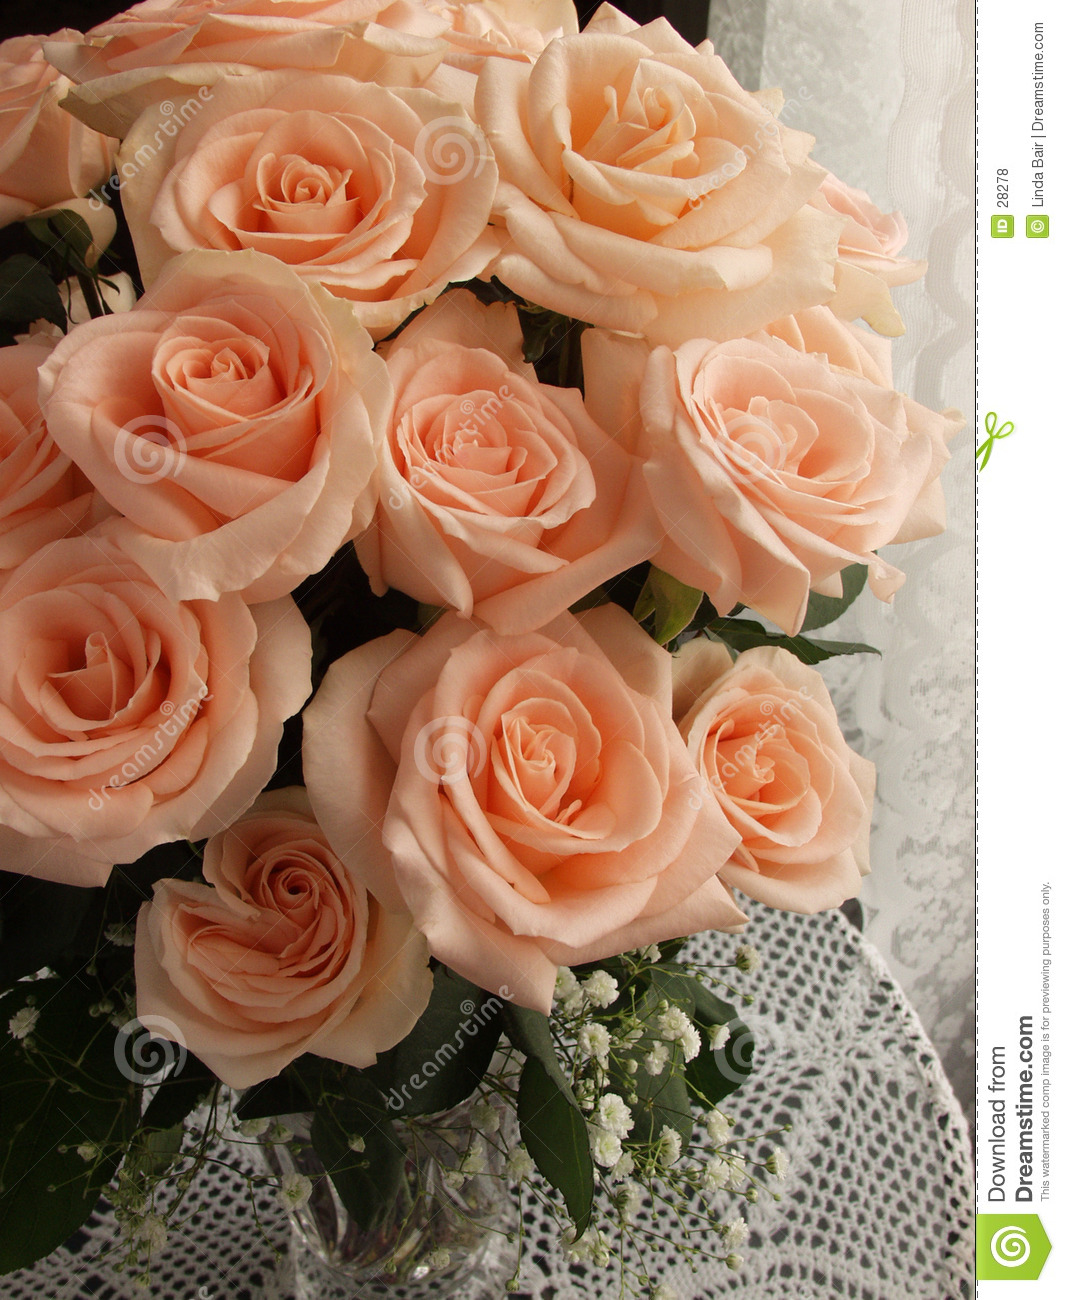 Blooming Bouquet Of Roses Stock Photo Image Of Peach Flowering 28278